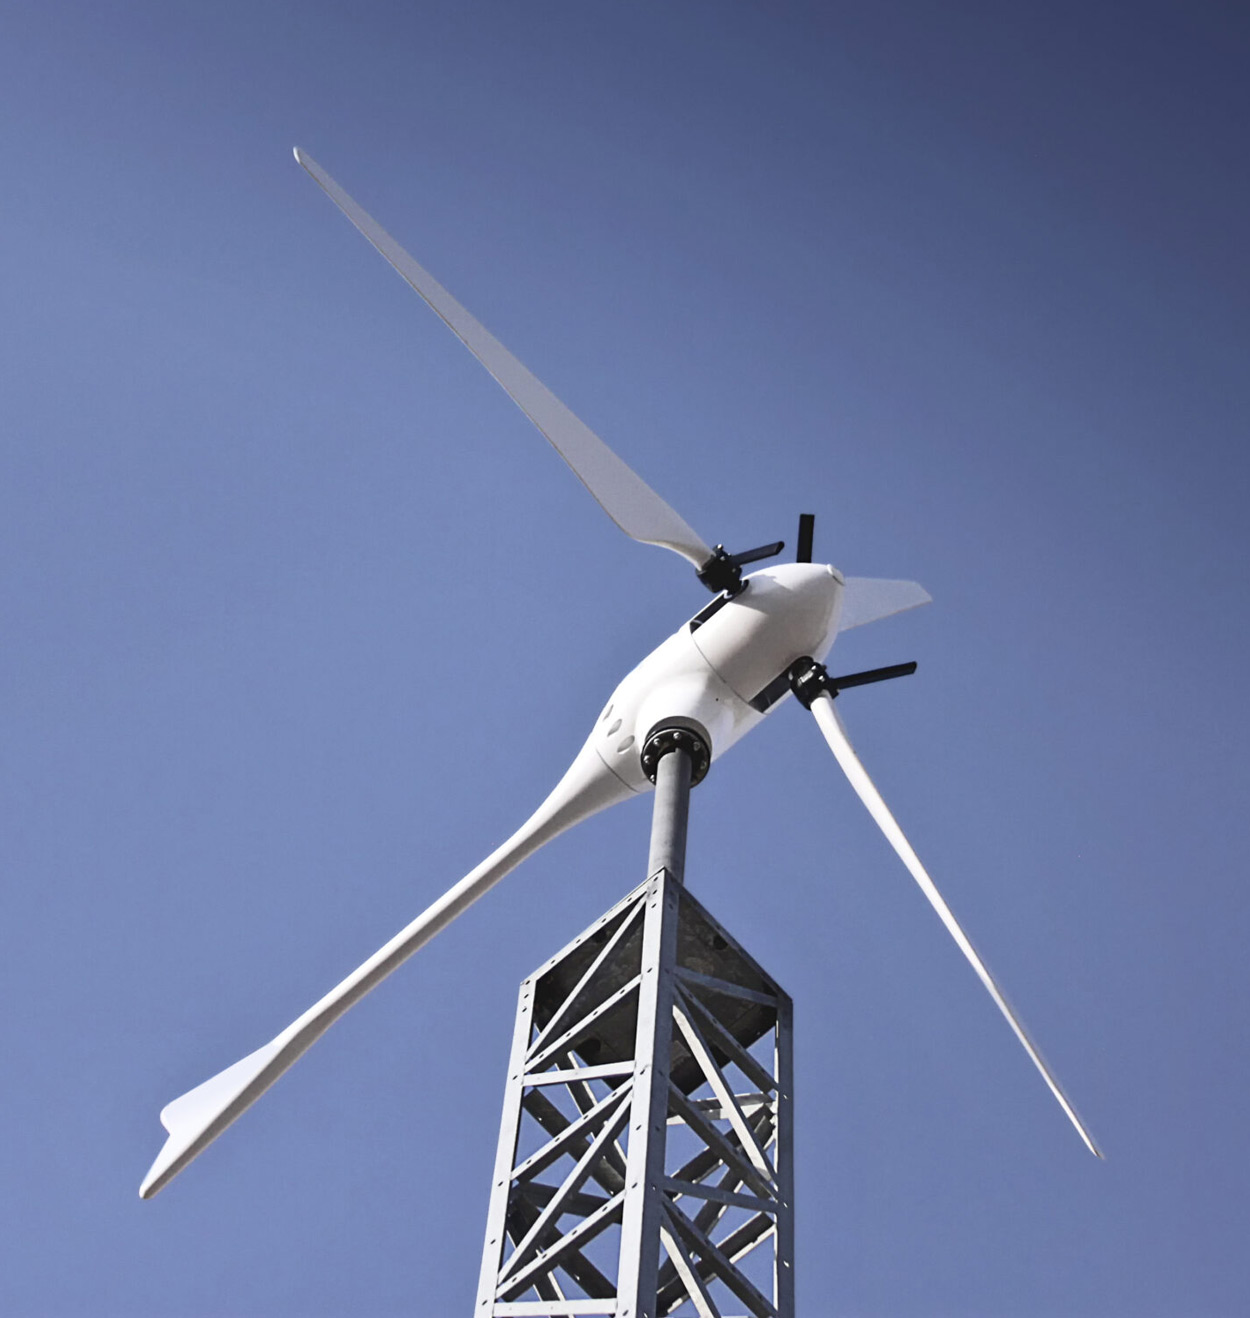 VECKTA and The Importance Of Wind In Microgrids